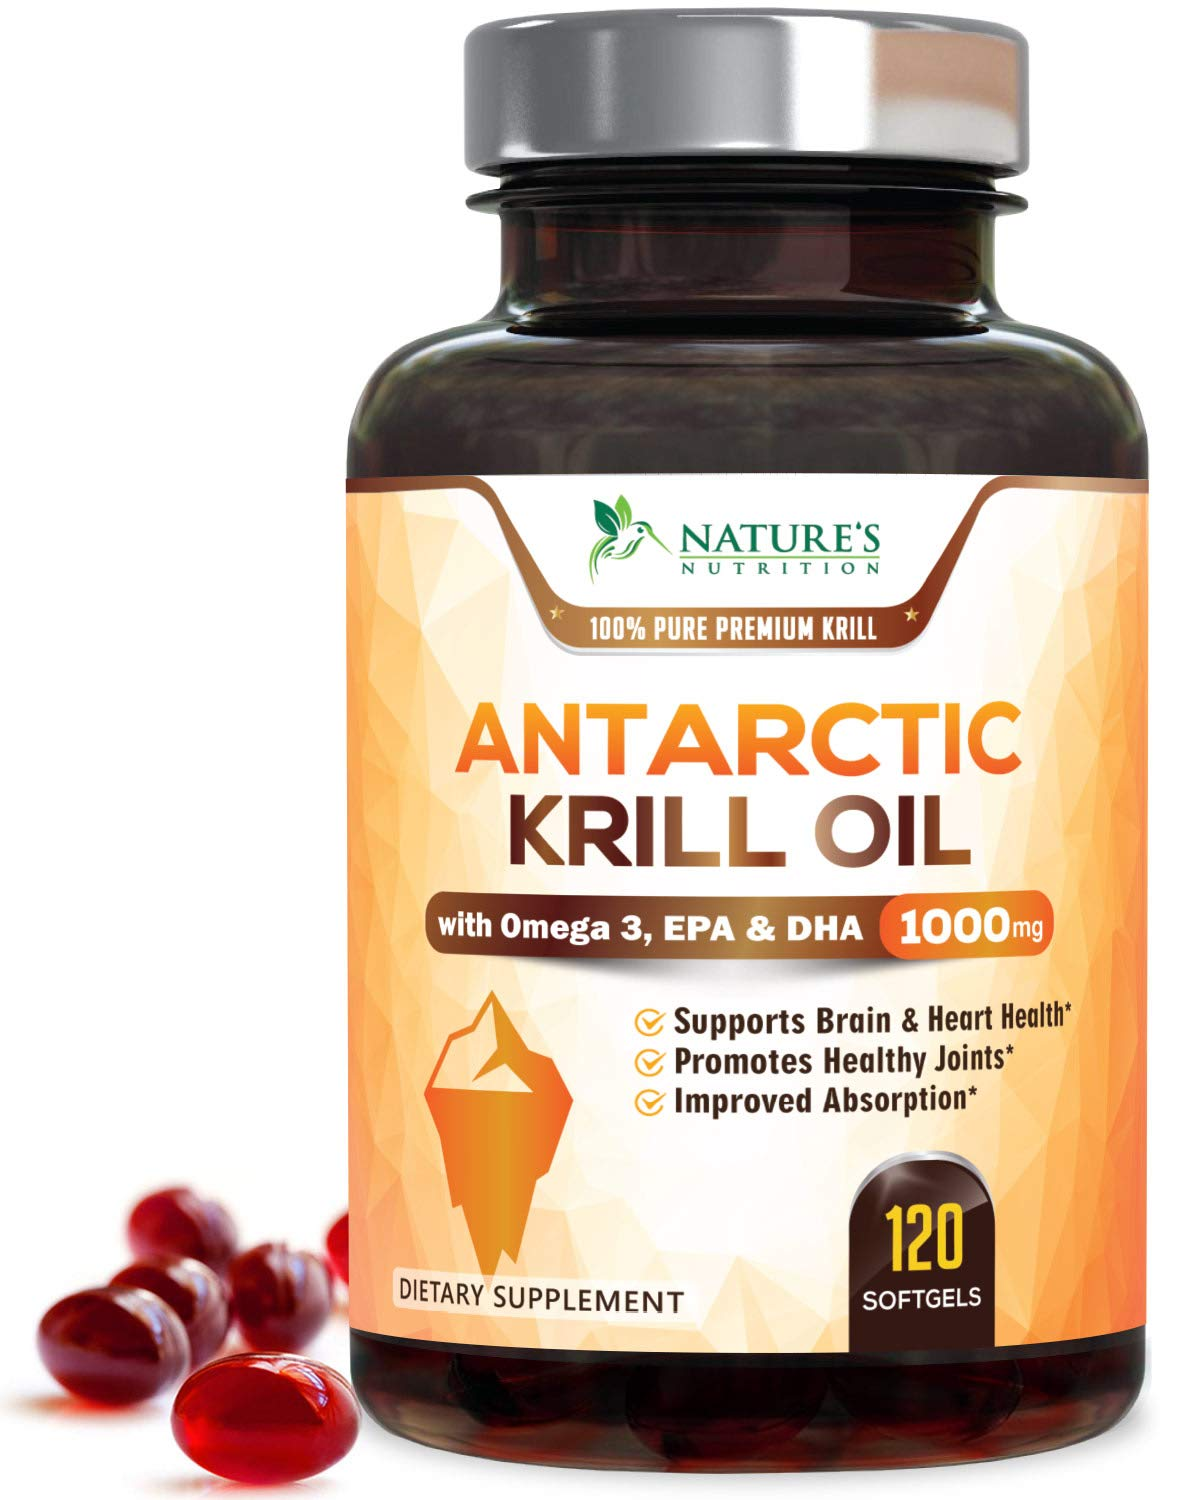 Krill Oil 1000mg Max Potency Antarctic Krill Supplement with Omega 3, EPA, DHA and Astaxanthin - Supports Heart, Brain & Joint Health - No Fishy Aftertaste, by Nature's Nutrition - 120 Softgels